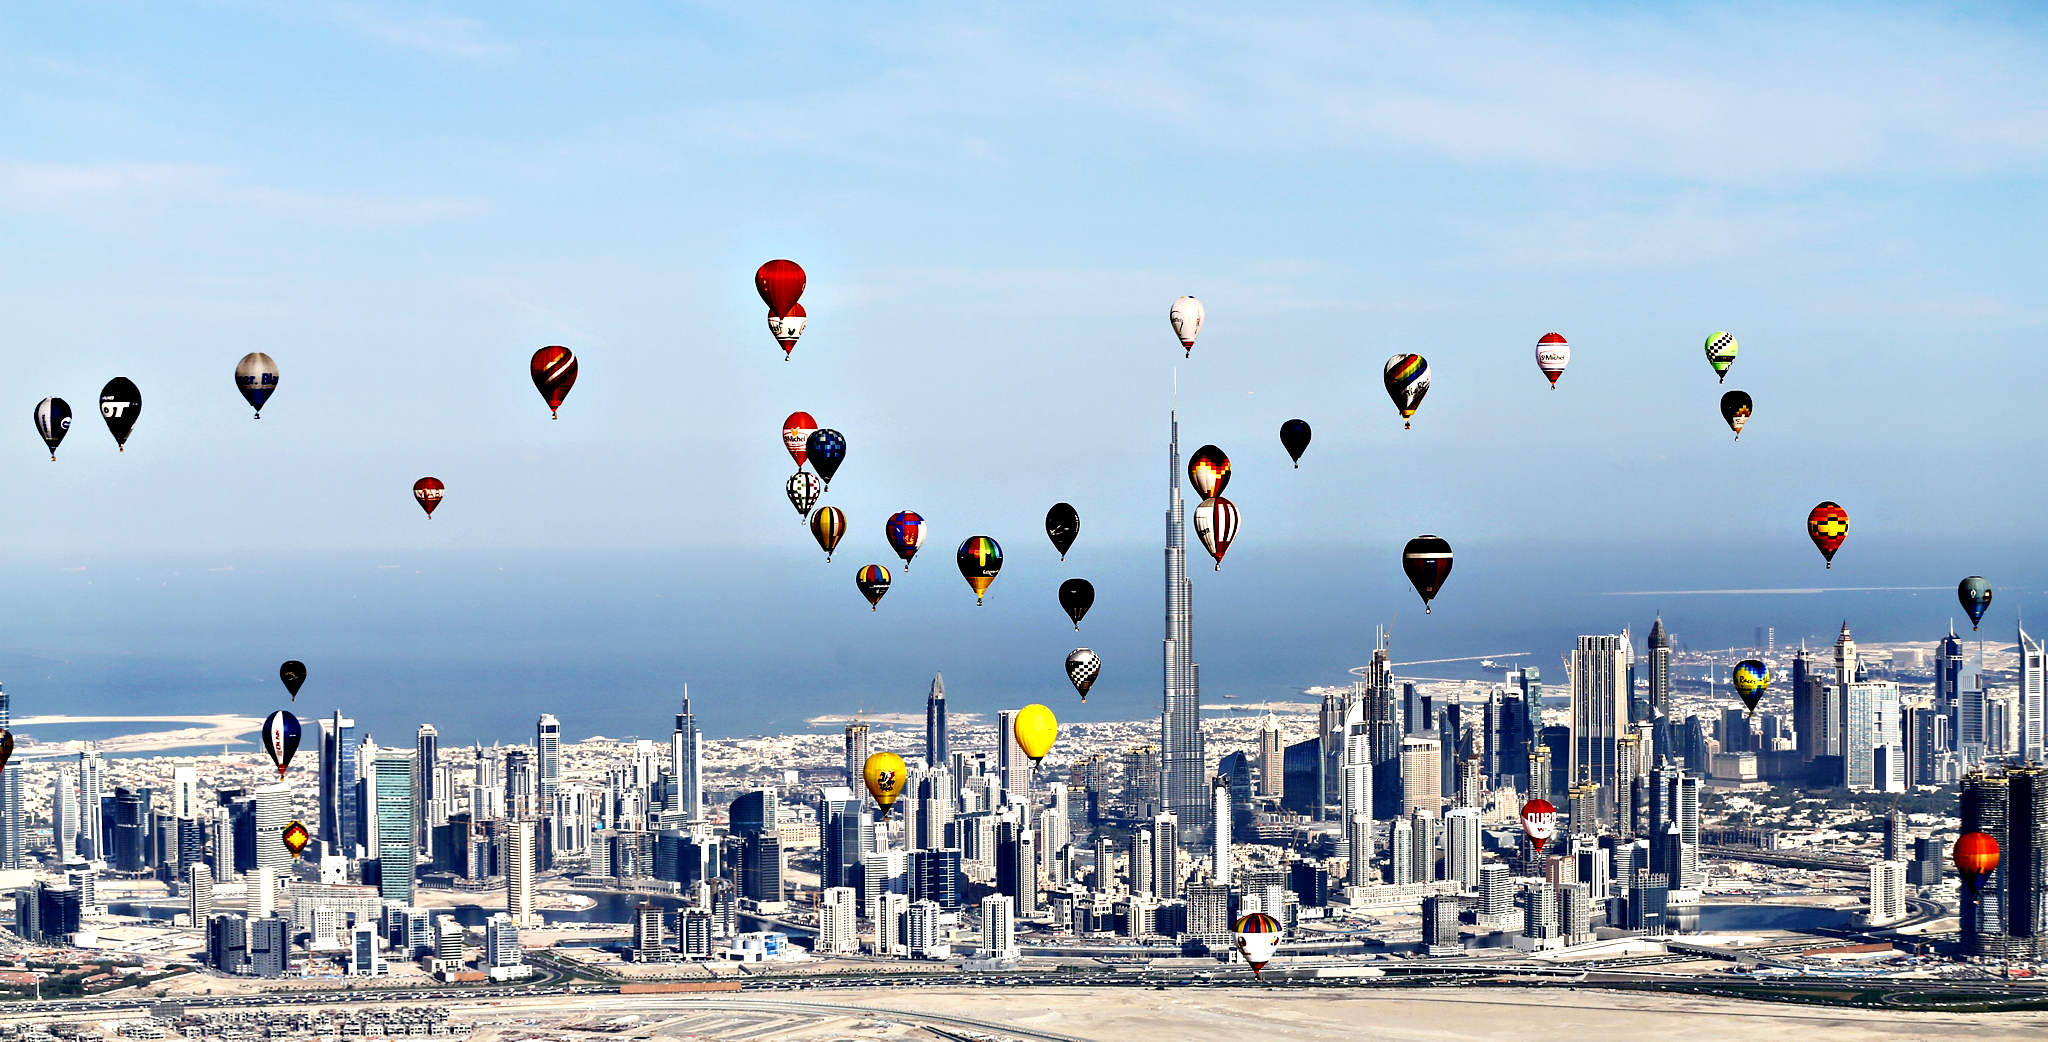 "Hot air balloons fly over Dubai during the World Air Games 2015, held under the rules of the Federation Aeronautique Internationale as part of the ""Dubai International Balloon Fiesta"" event...Hot air balloons fly over Dubai during the World Air Games 2015, held under the rules of the Federation Aeronautique Internationale (FAI) as part of the ""Dubai International Balloon Fiesta"" event, United Arab Emirates December 9, 2015"